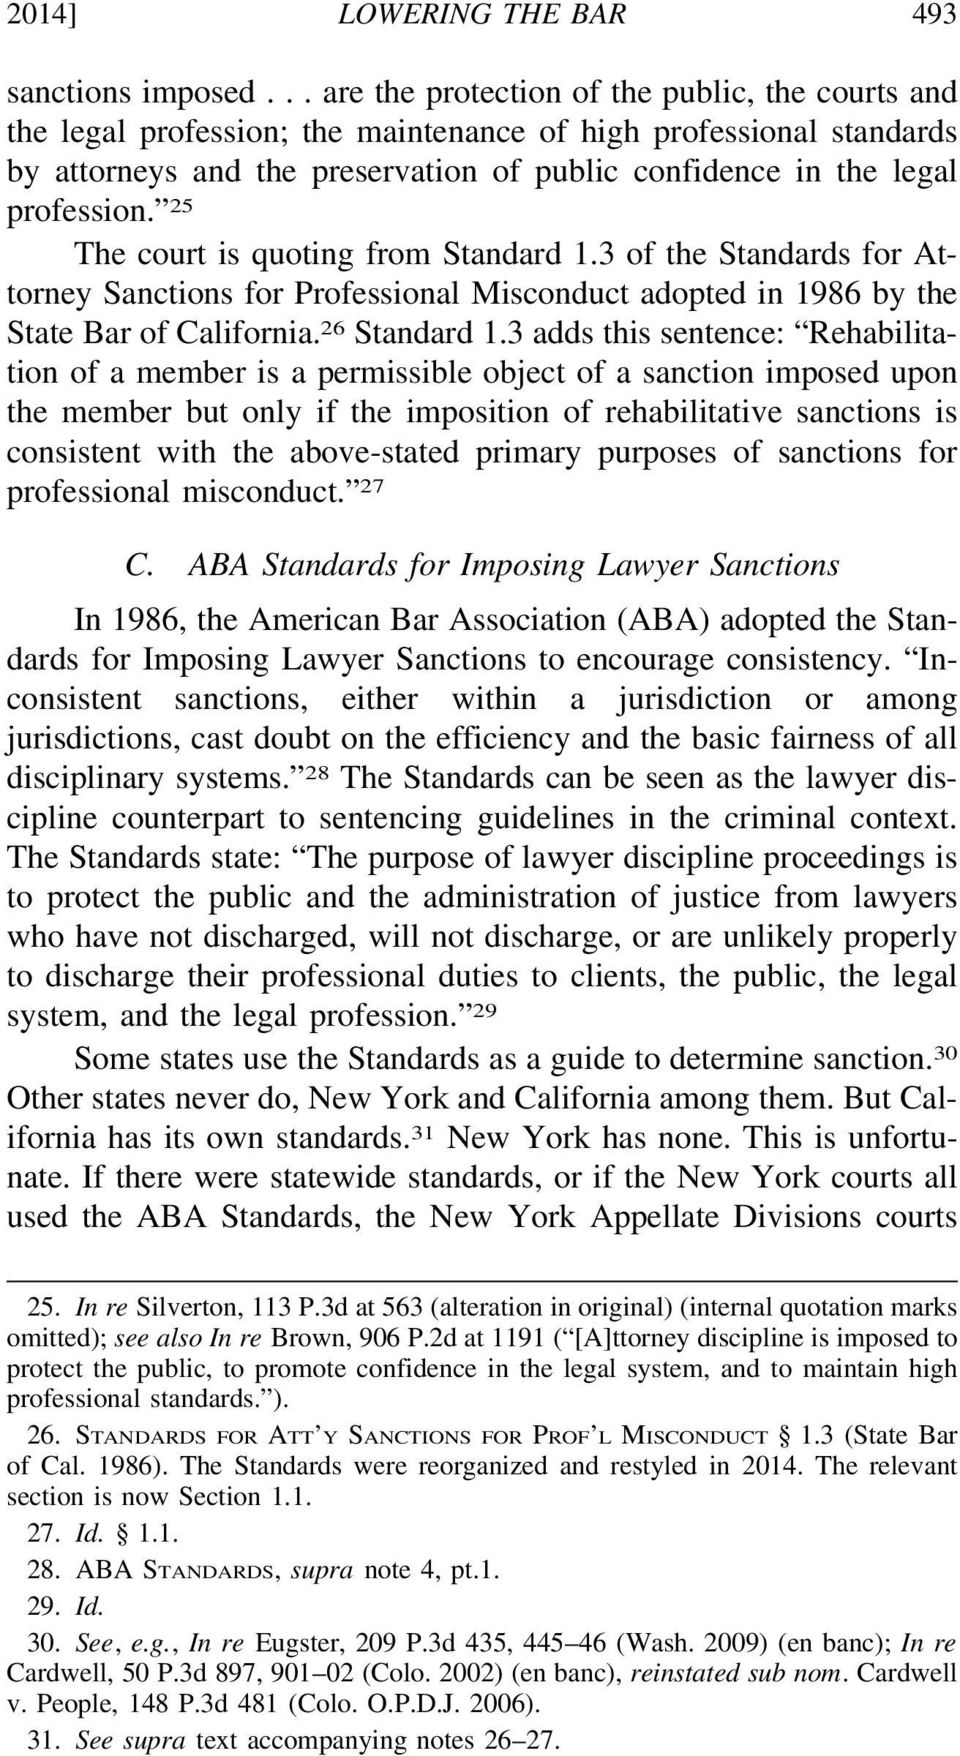 25 The court is quoting from Standard 1.3 of the Standards for Attorney Sanctions for Professional Misconduct adopted in 1986 by the State Bar of California. 26 Standard 1.